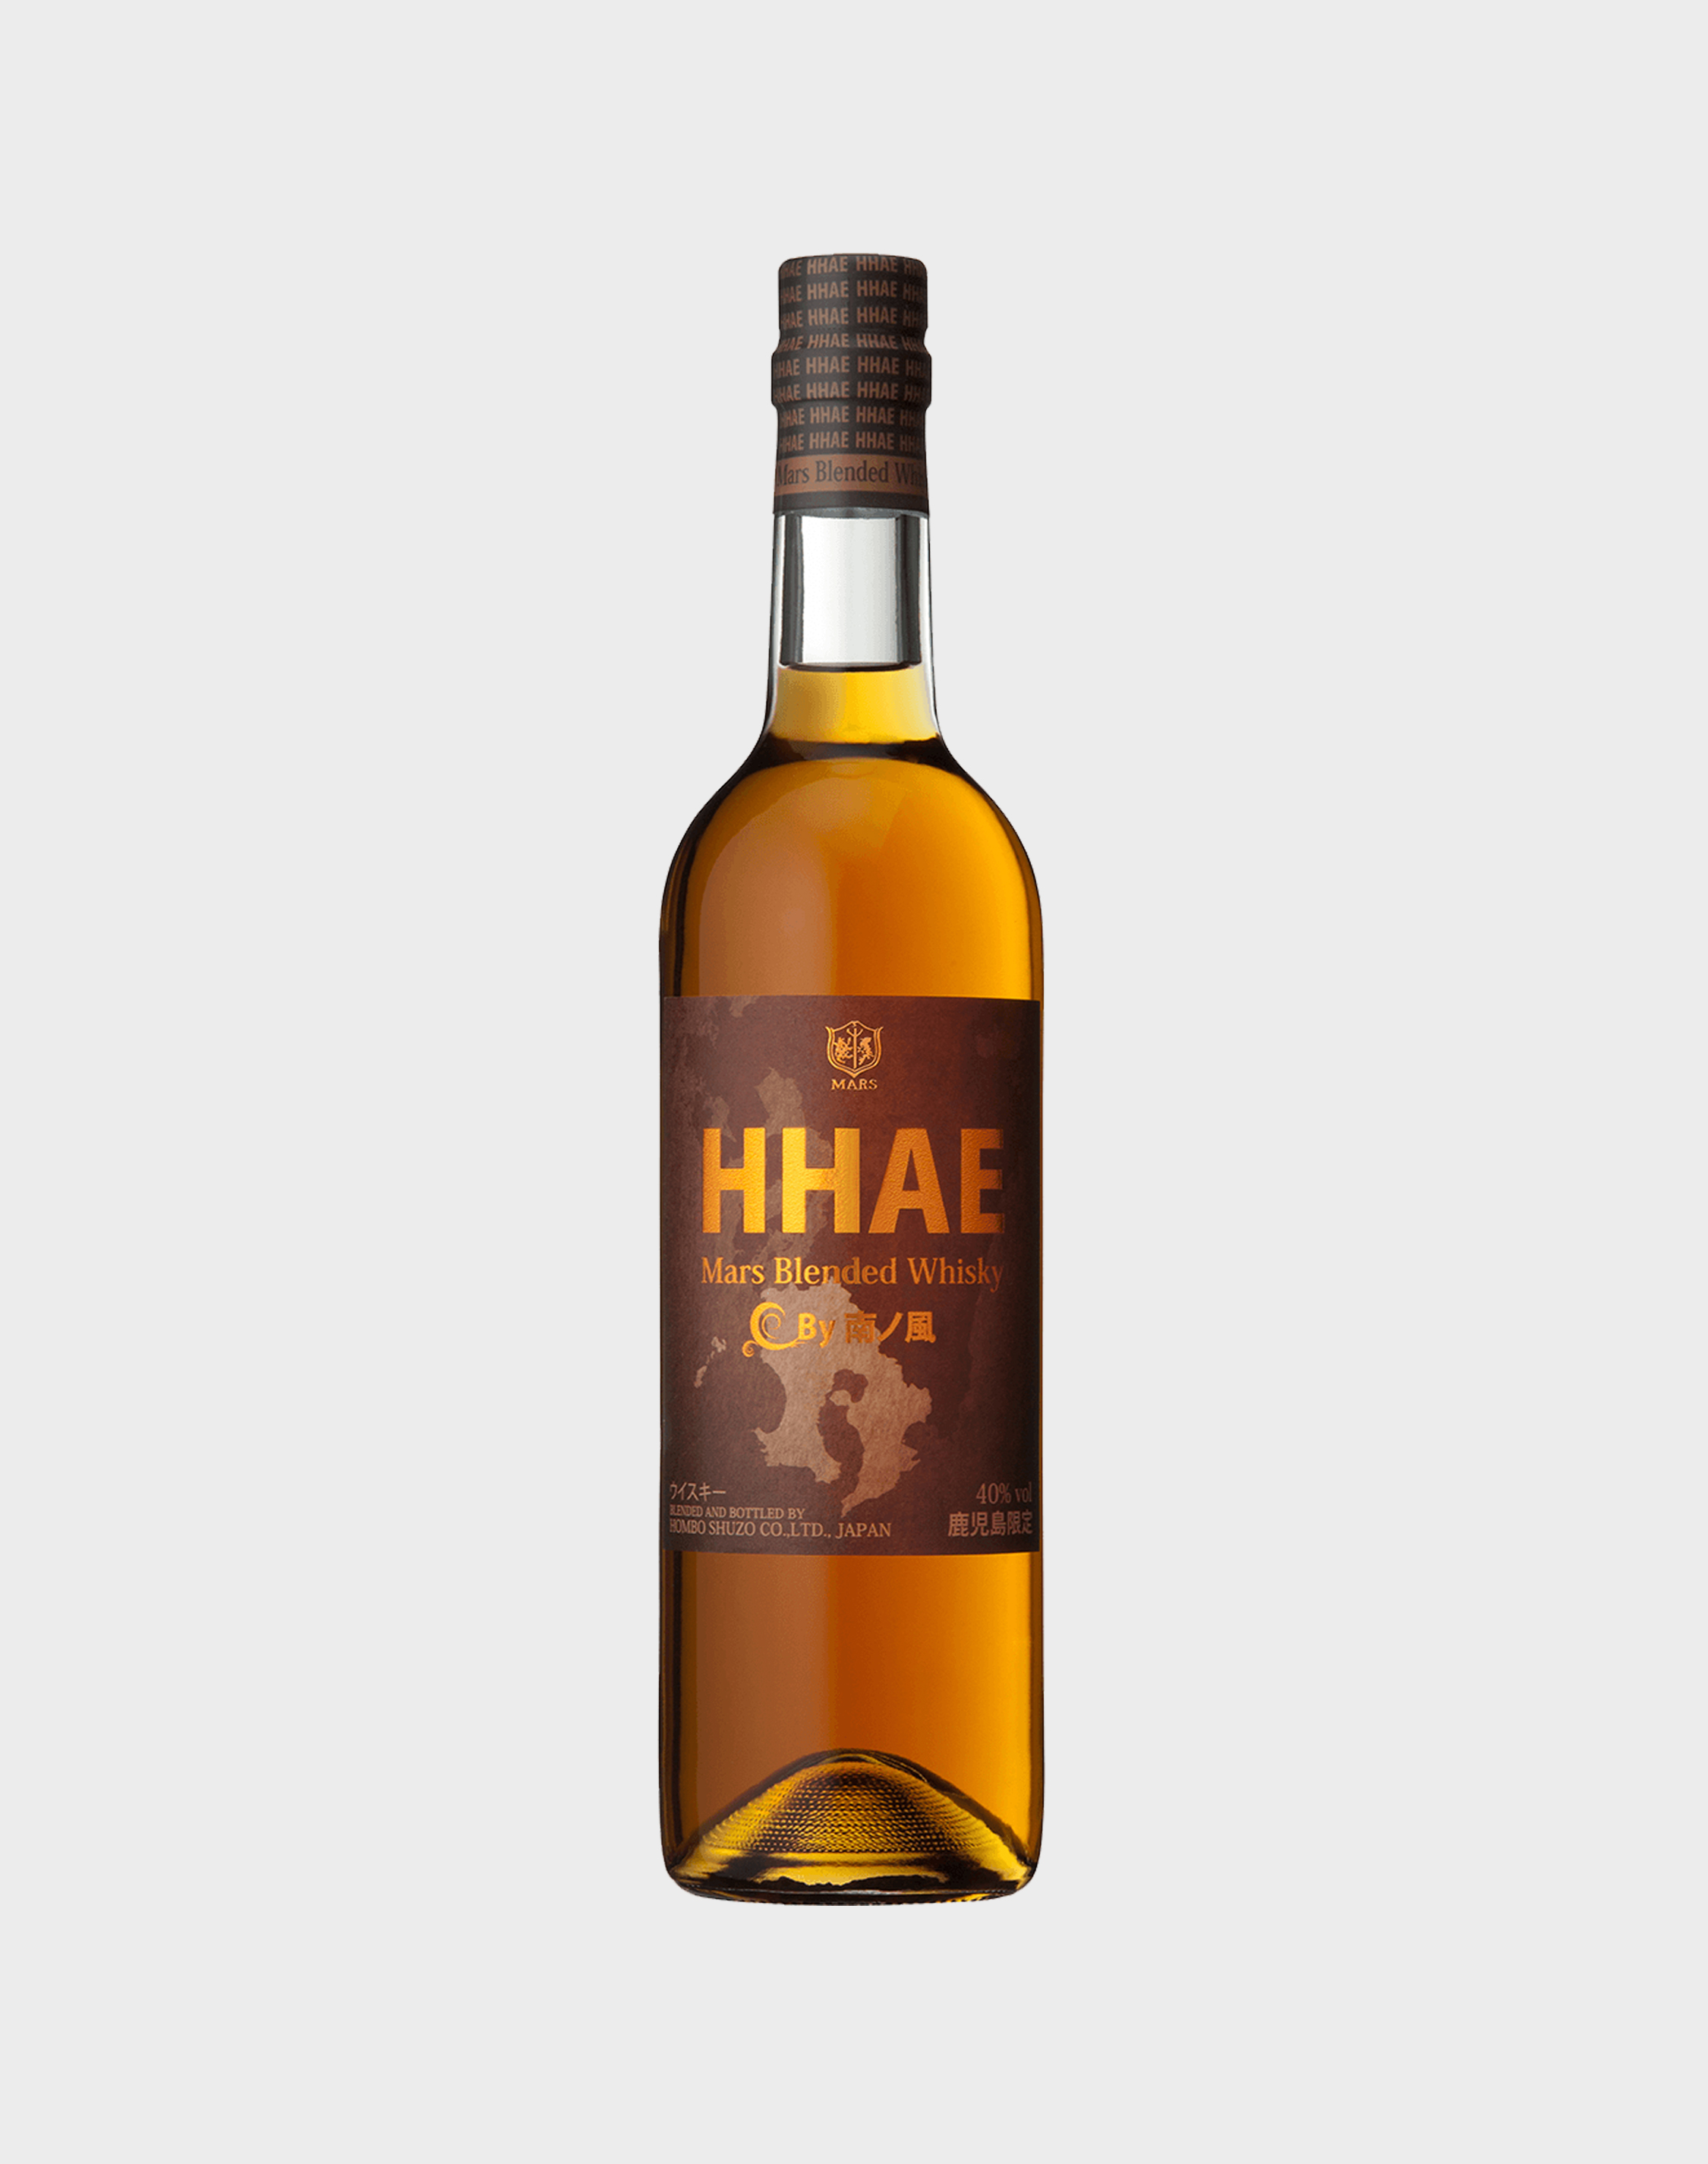 Mars Hhae Blended Whisky